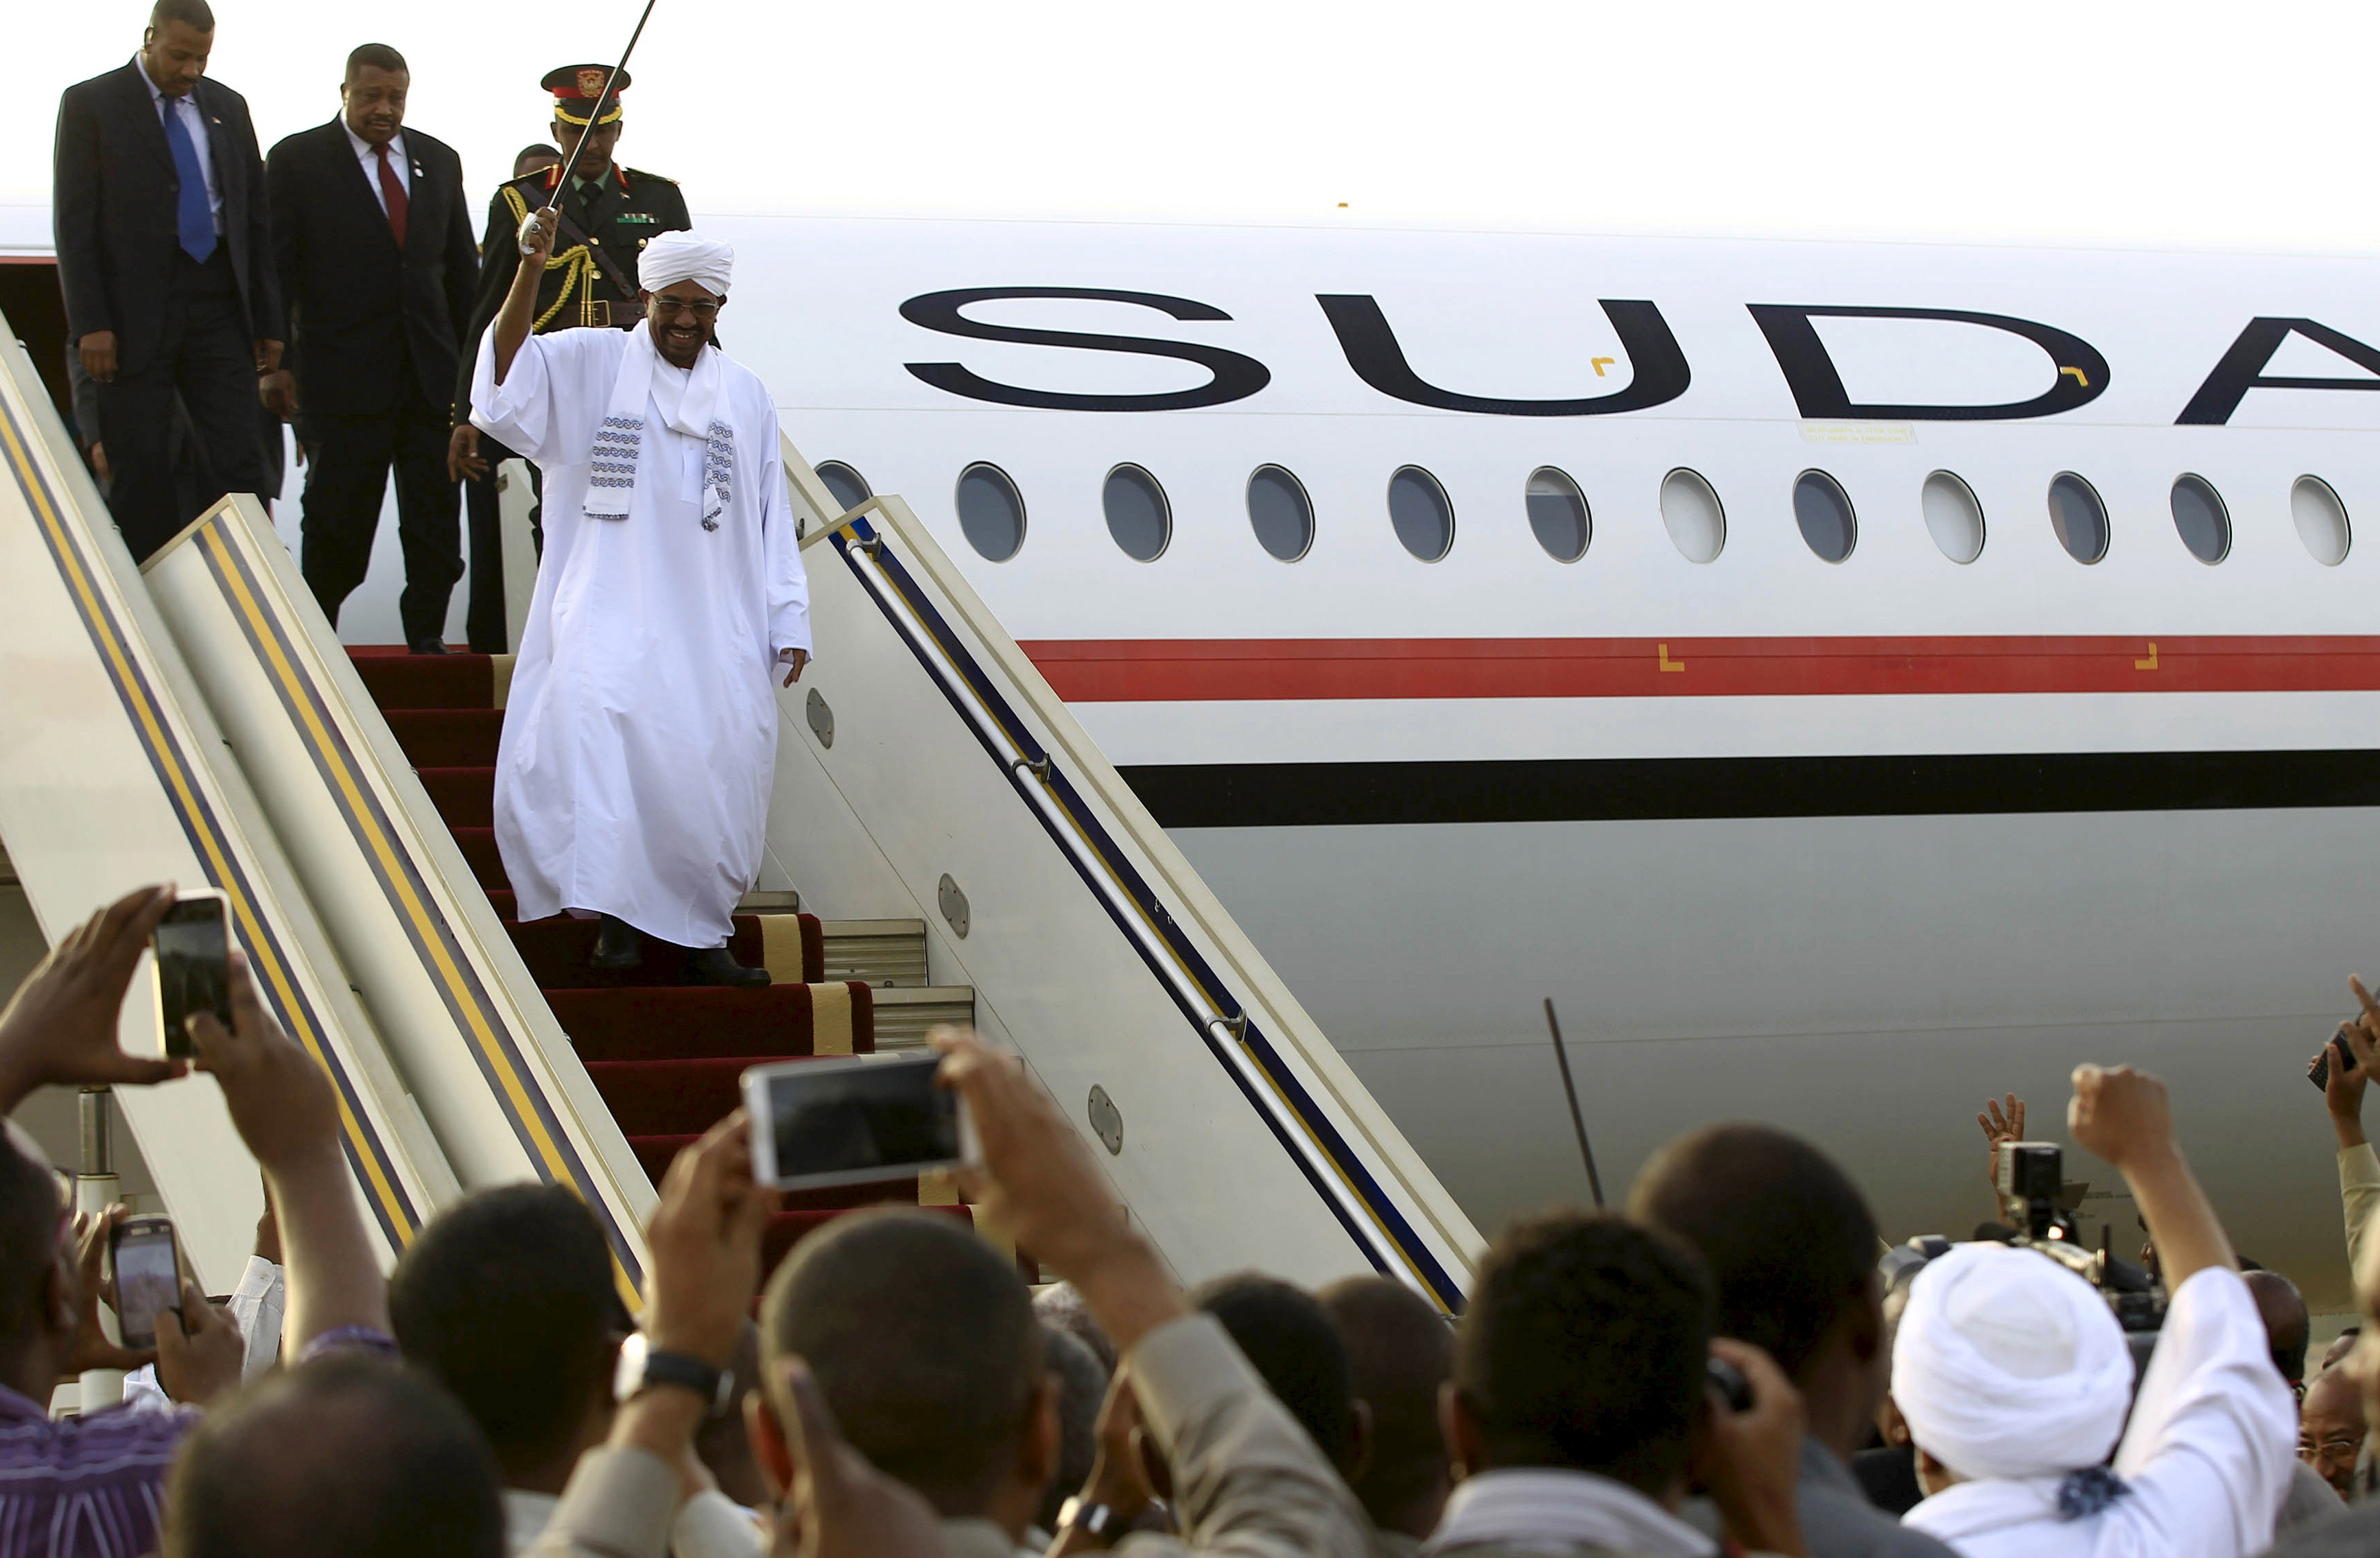 "Sudanese President Omar al-Bashir disembarks from the plane, after attending an African Union conference in Johannesburg South Africa, at the airport in the capital Khartoum, Sudan June 15, 2015. Al-Bashir flew out of South Africa on Monday in defiance of a Pretoria court that later said he should have been arrested to face genocide charges at the International Criminal Court. Despite a legal order for him to stay in the country ahead of the ruling on his detention, the government let Bashir leave unhindered, with South Africa's ruling party accusing the ICC of being biased against Africans and ""no longer useful"".   REUTERS/Mohamed Nureldin Abdallah      TPX IMAGES OF THE DAY      - RTX1GM4W"